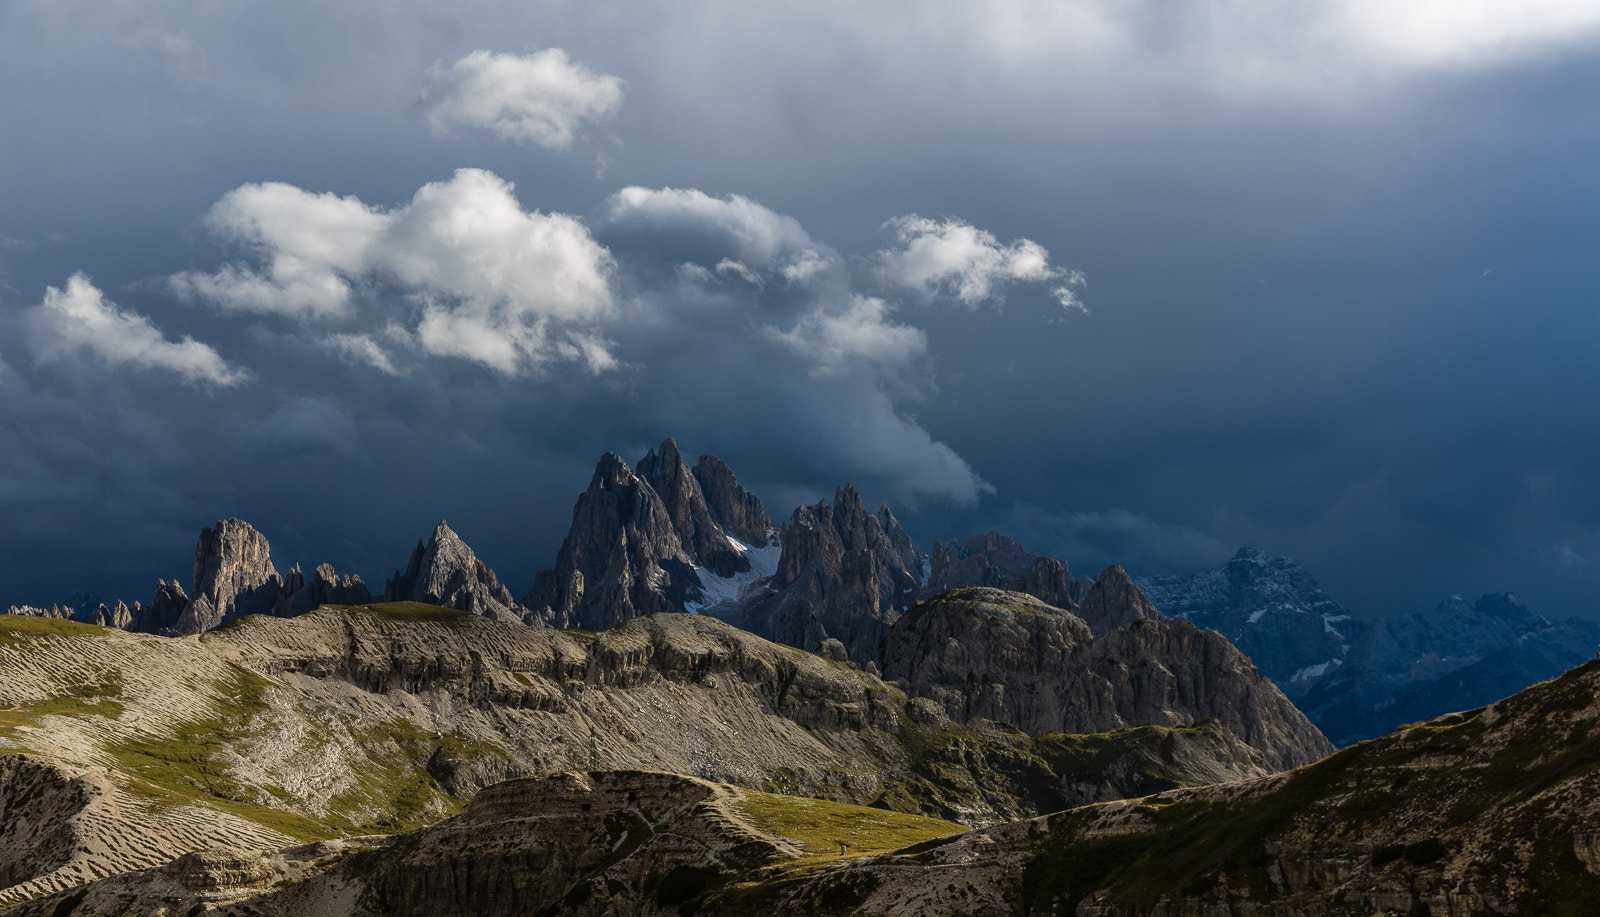 Photograph Afternoon light on mountains at Tre Cime di Lavaredo by Hans Kruse on 500px